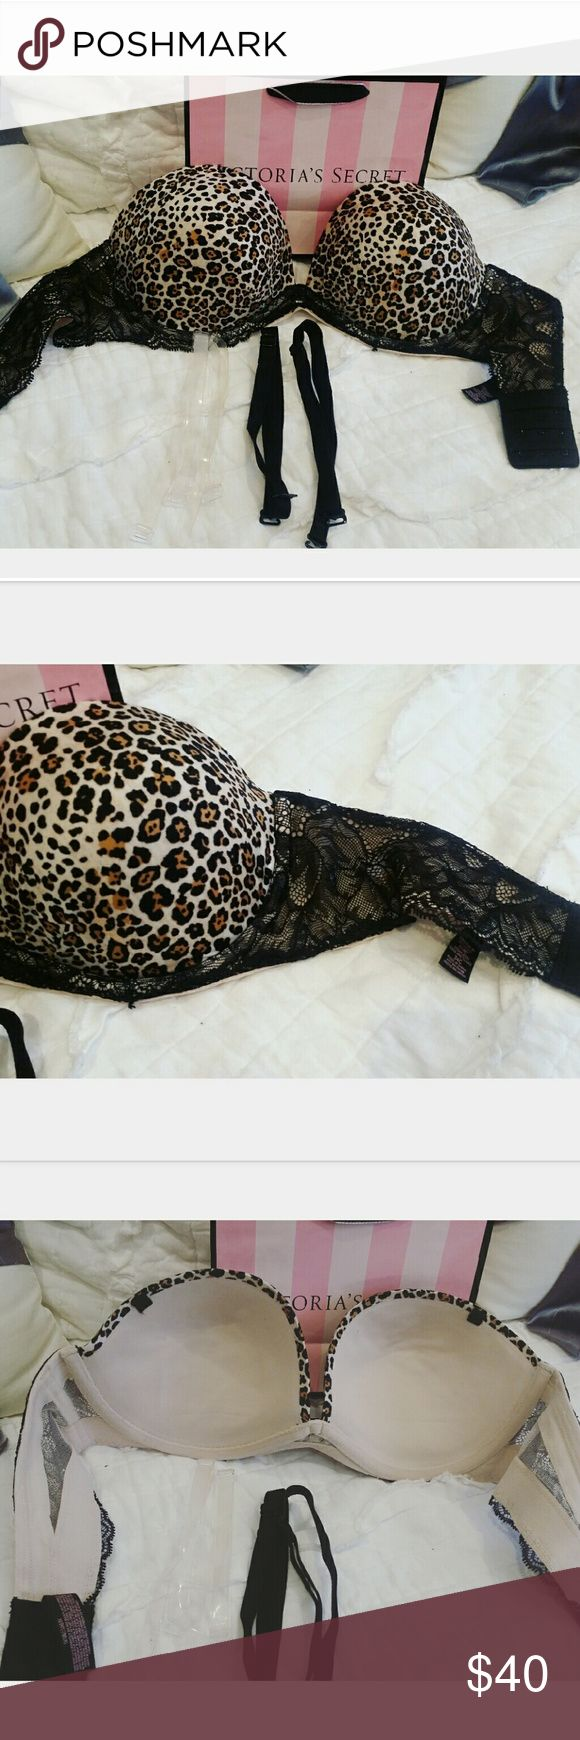 Victorias Secret Fabulous Bra Brand new without tags. Fabulous pushup collection. Can be worn strapless as well as multi way . Comes with black straps and clear straps. Victoria's Secret Intimates & Sleepwear Bras